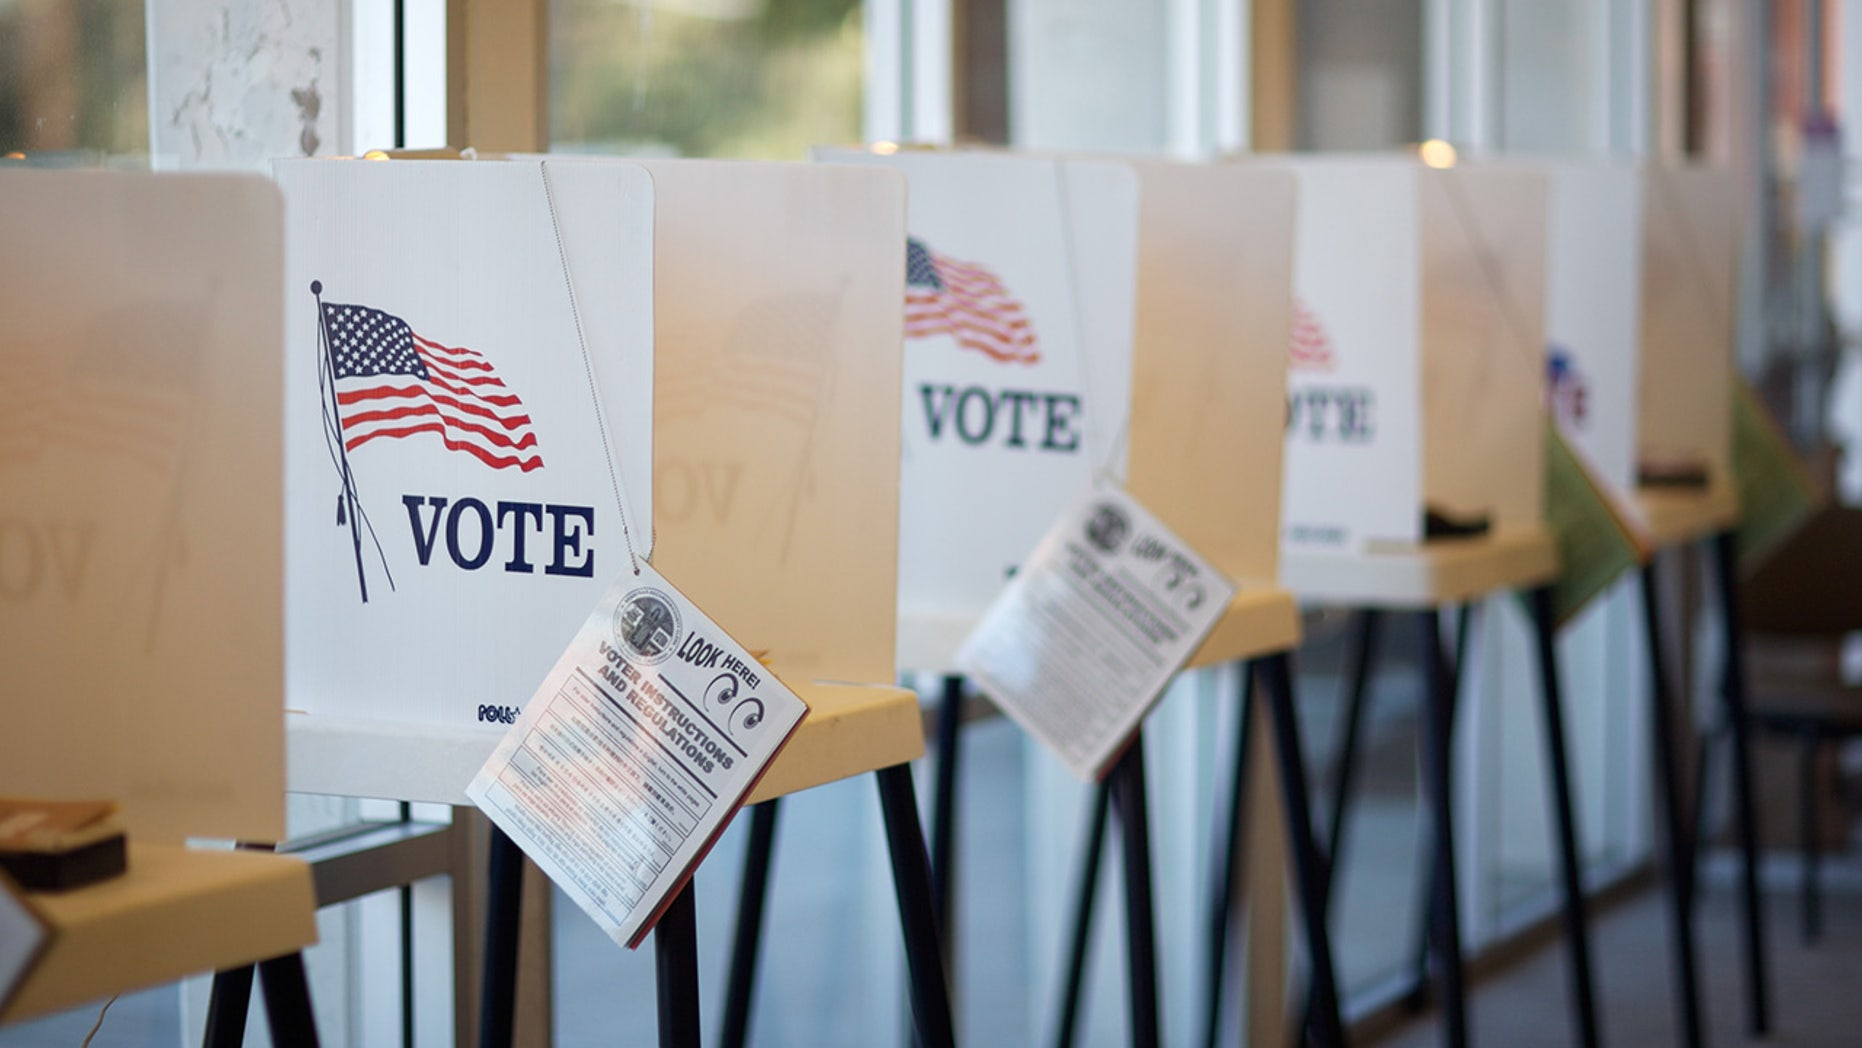 Boston's city council is holding a public hearing on whether it should allow non-U.S. residents who are in the country legally the ability to vote in city elections.